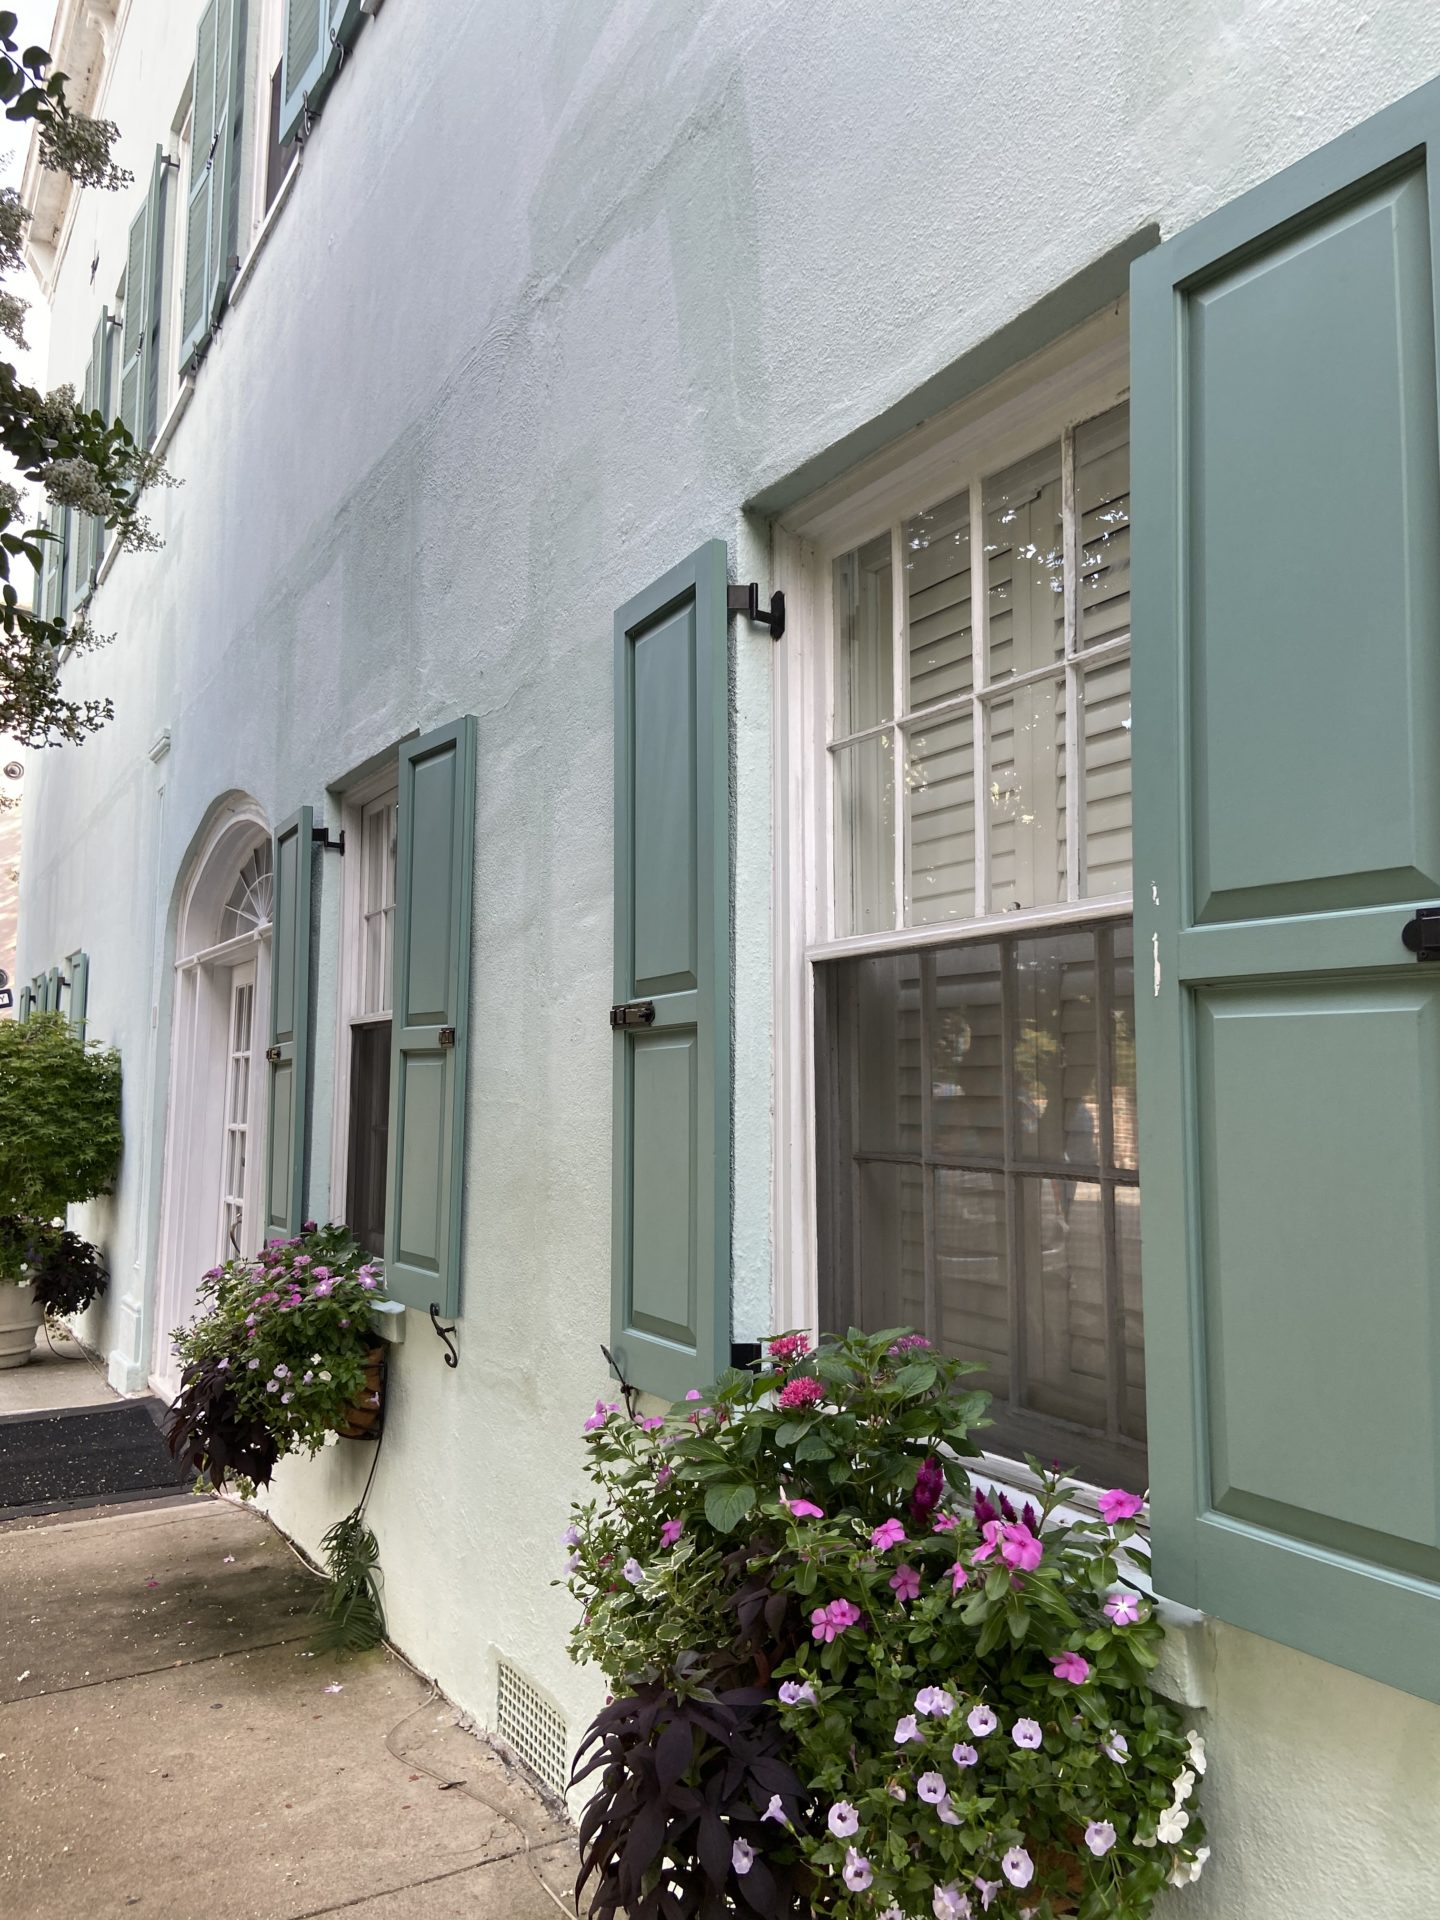 rainbow row charleston south carolina window box